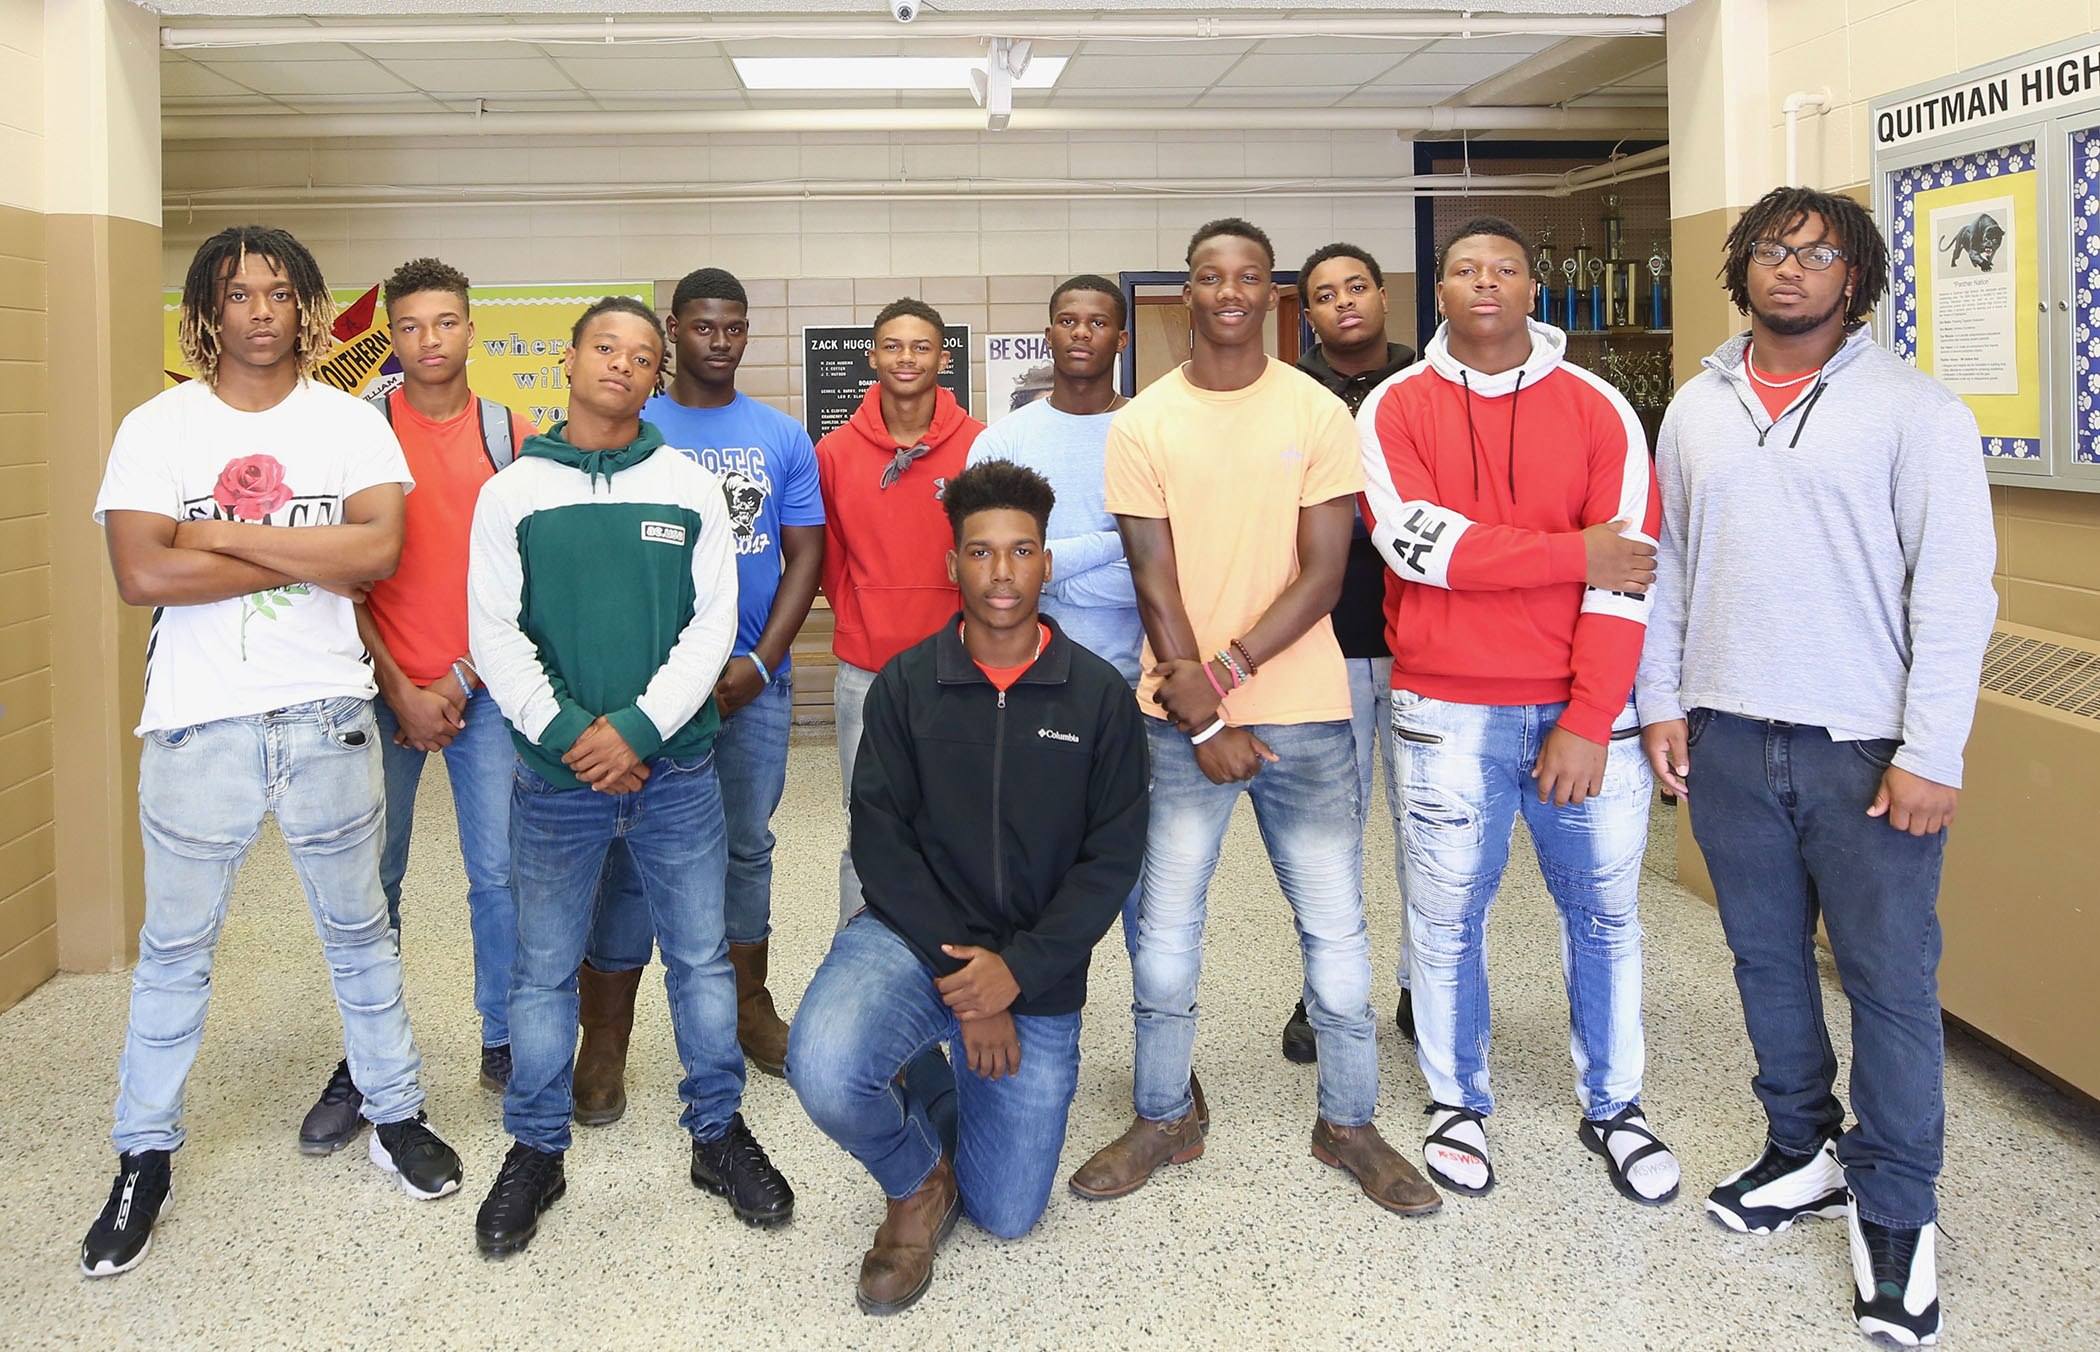 Jamal poses with his 11 brothers.